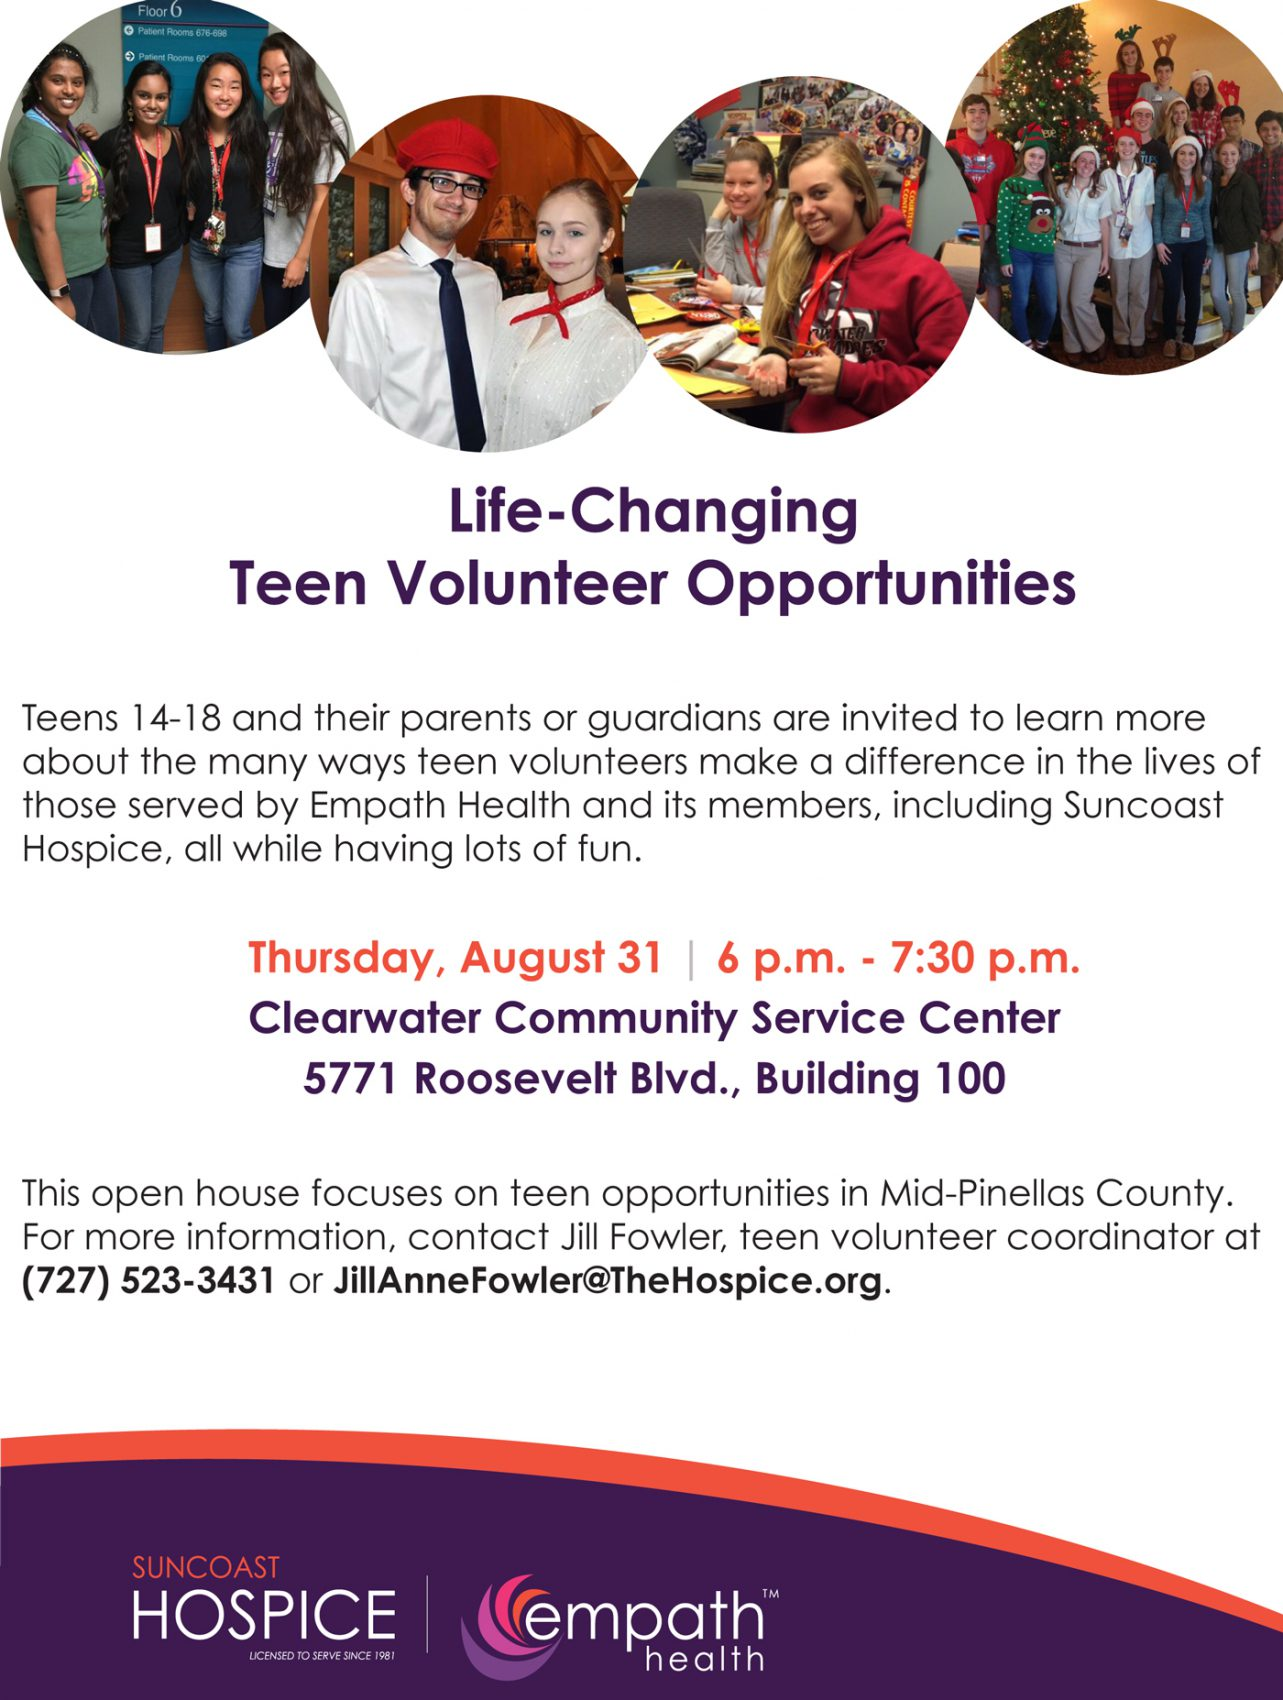 Teen Volunteer Recruitment Open House @ Suncoast Hospice | Empath Health